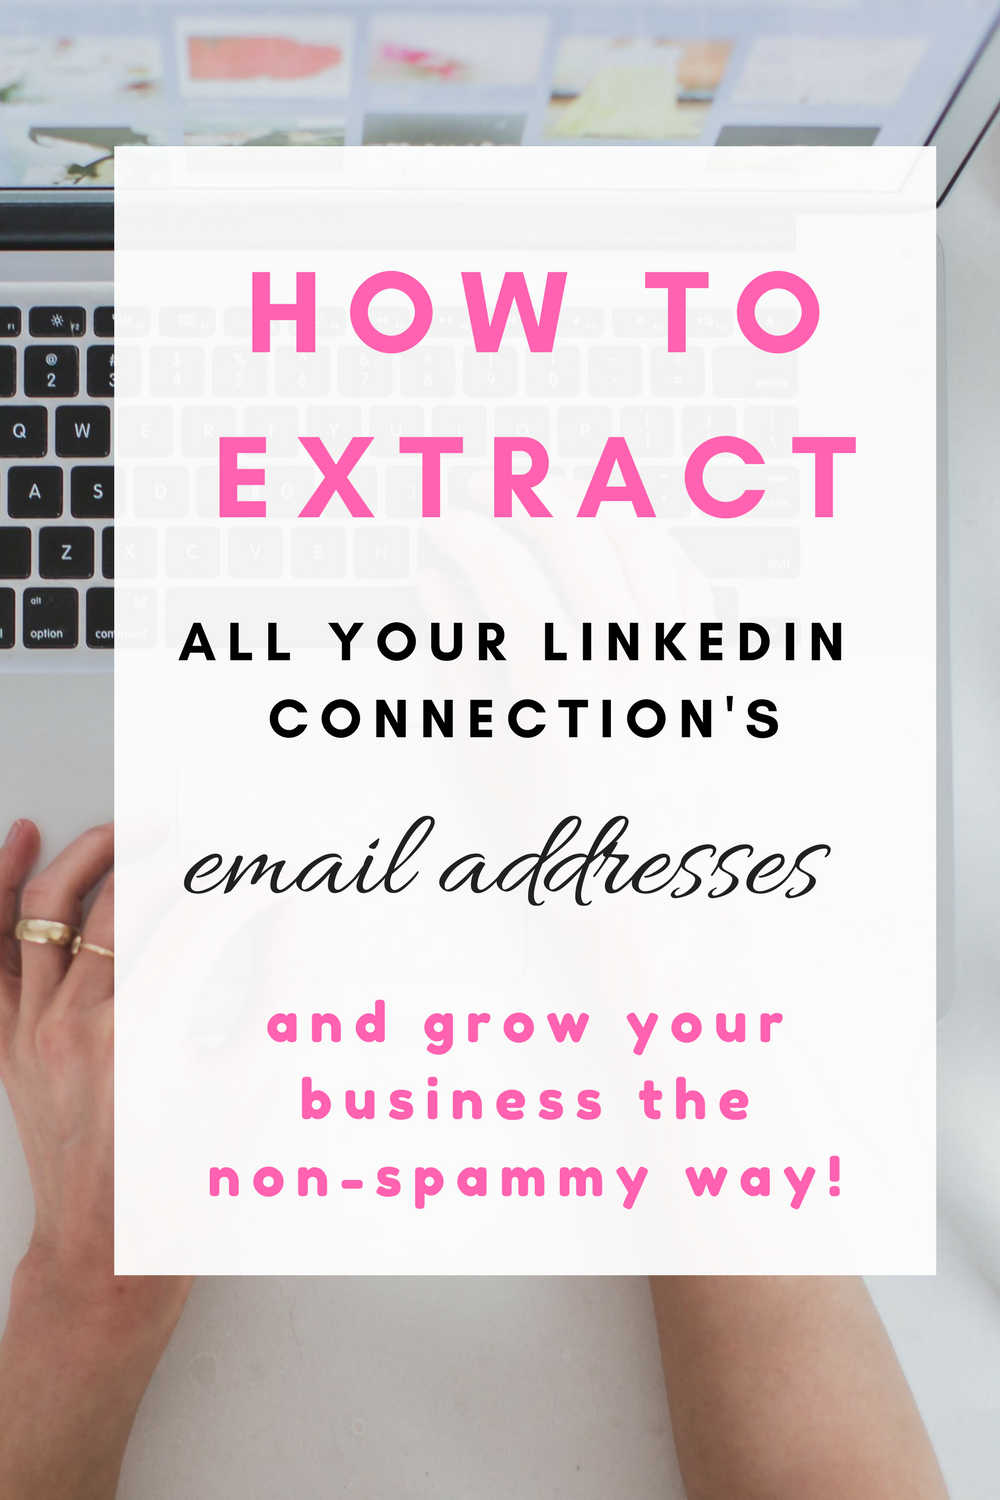 's email addresses and grow your business the non spammy way